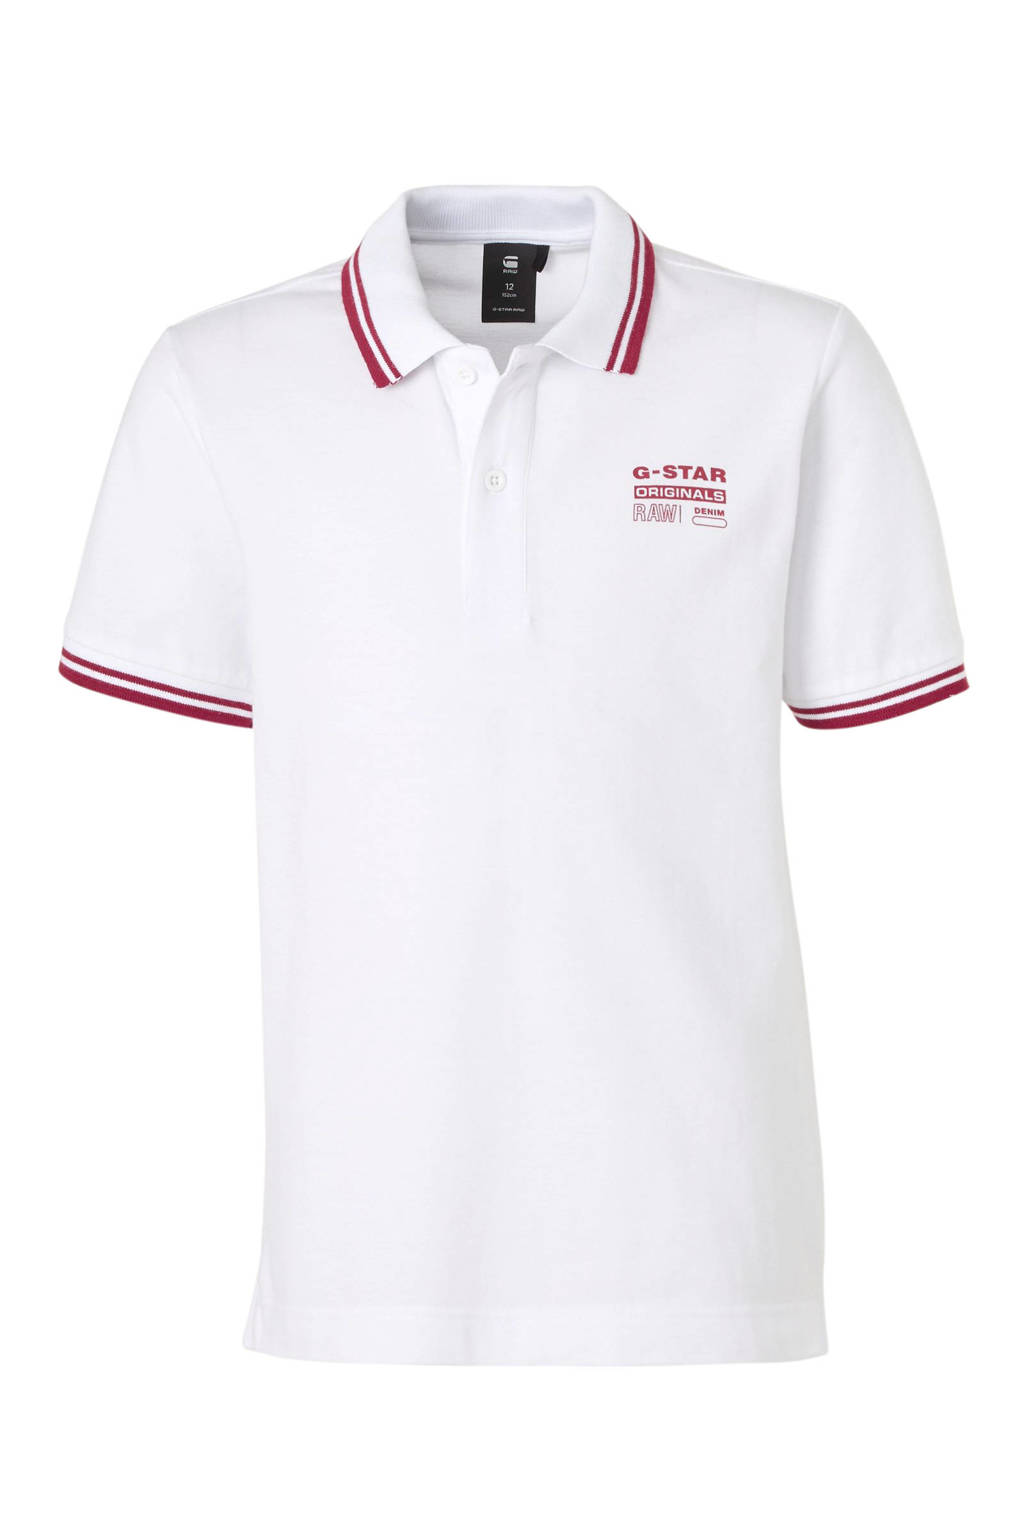 G-Star RAW polo Dunda met logo wit/rood, Wit/rood